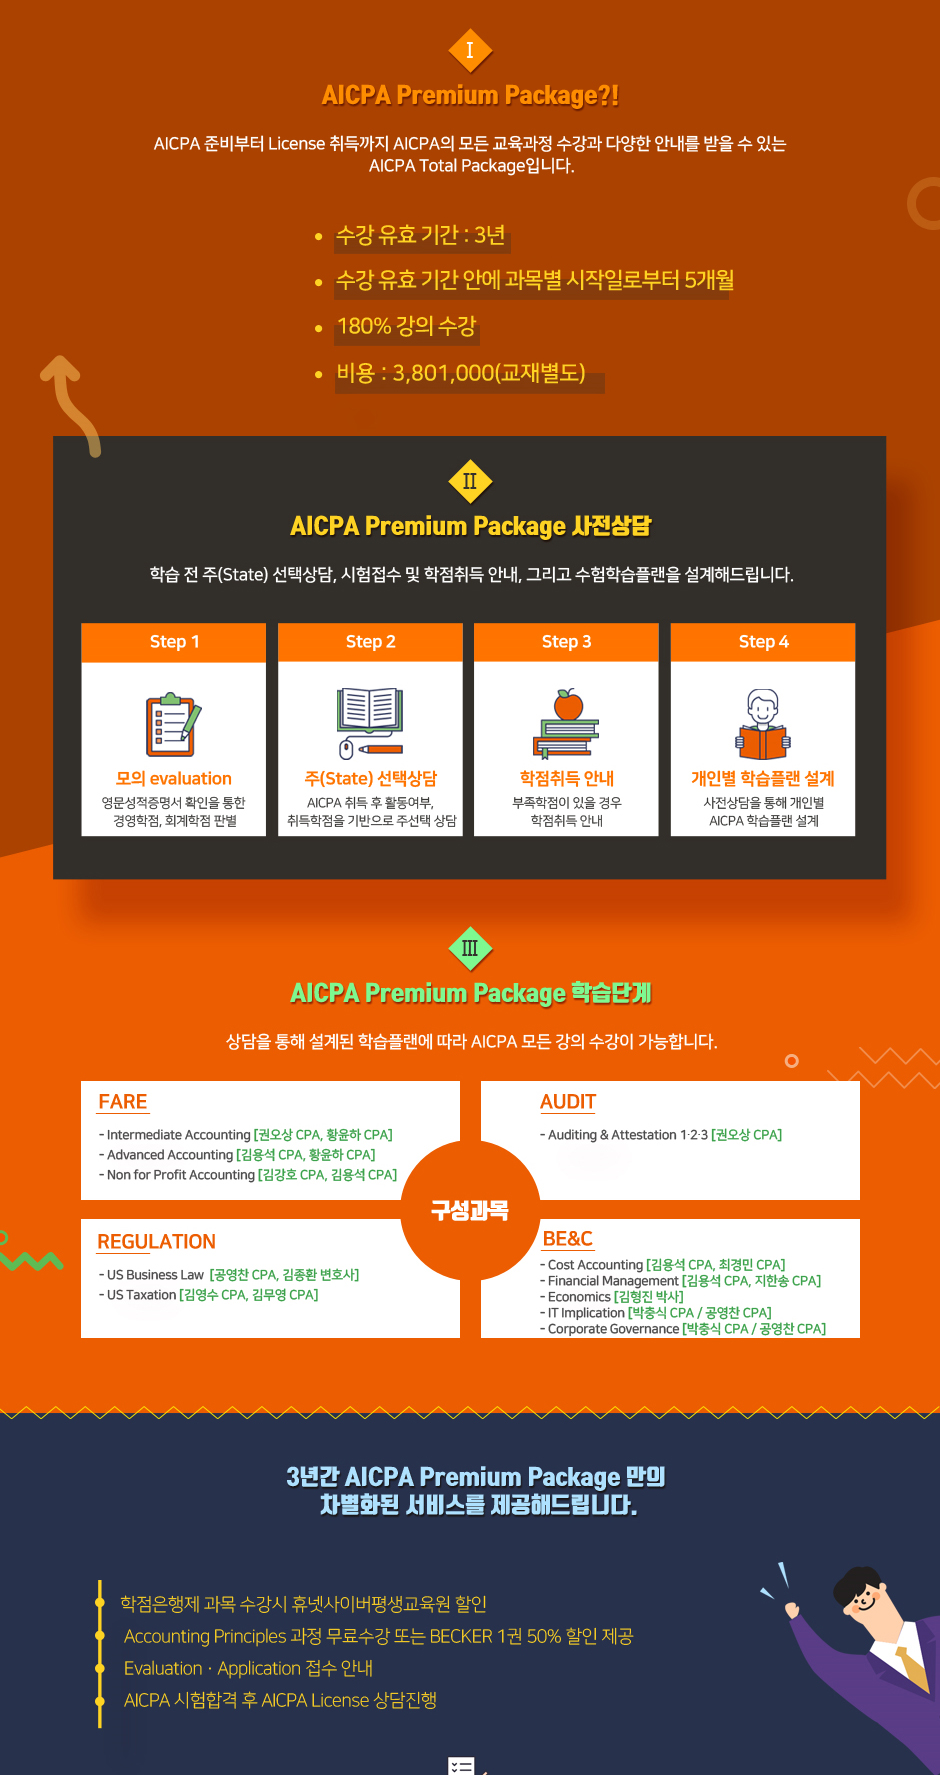 AICPA Premium Package